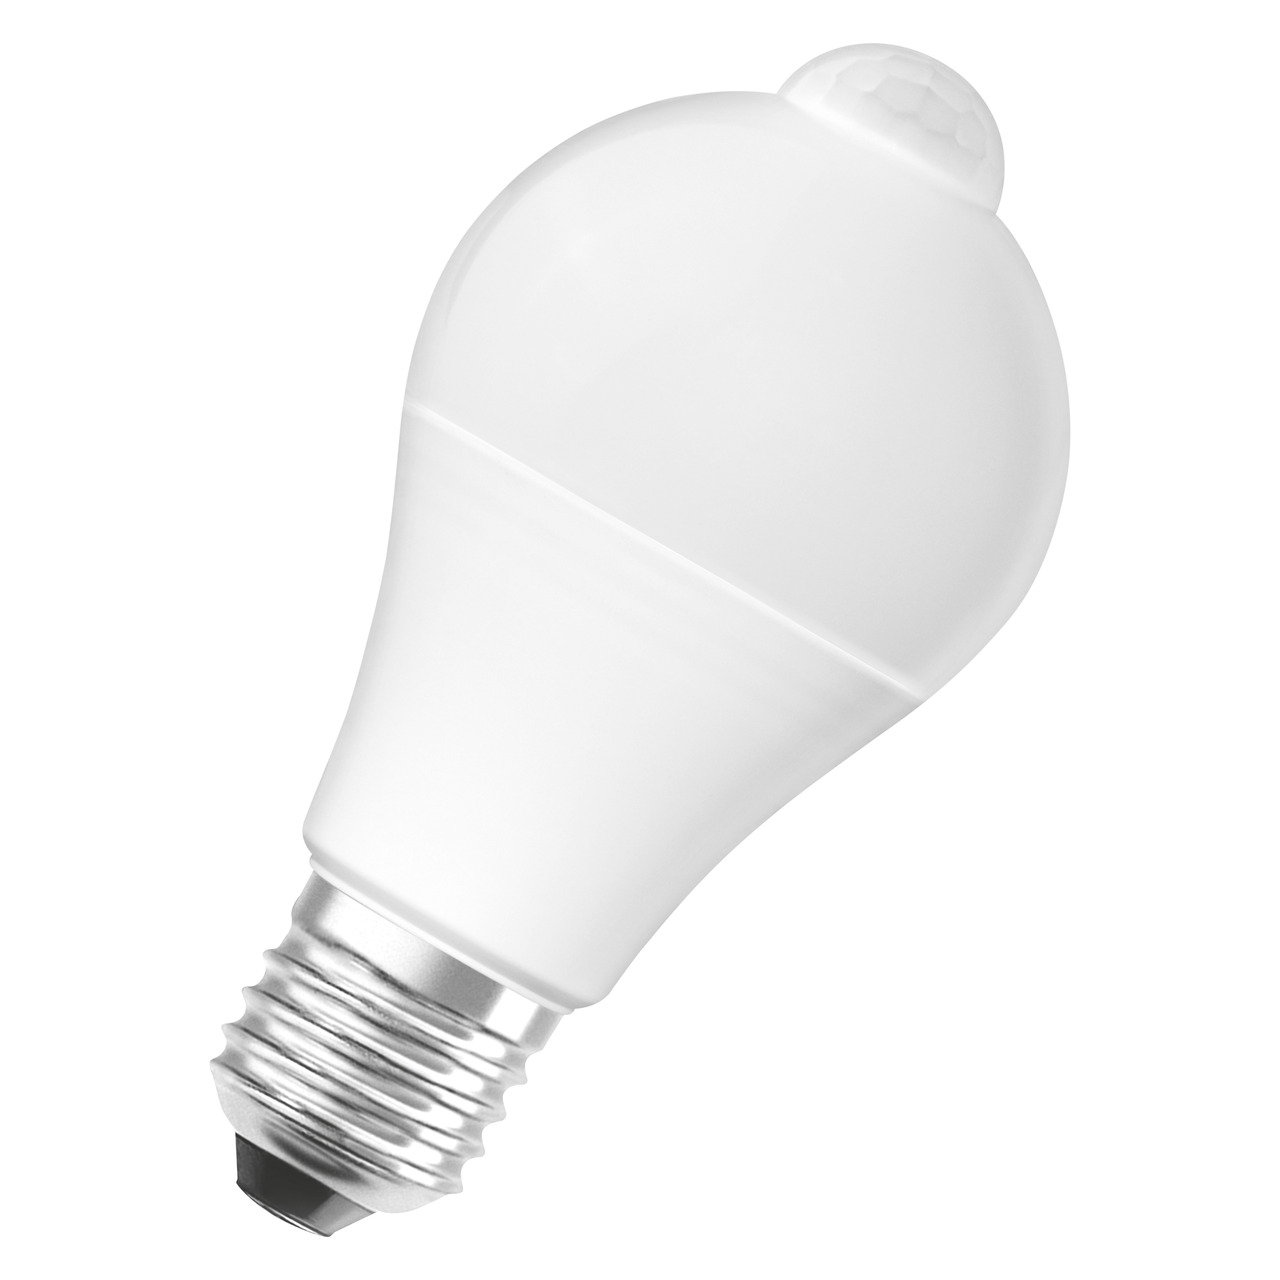 OSRAM LED STAR PLUS MOTION  11-5-W-Sensor-LED-Lampe E27 mit PIR-Bewegungsmelder- warmweiss